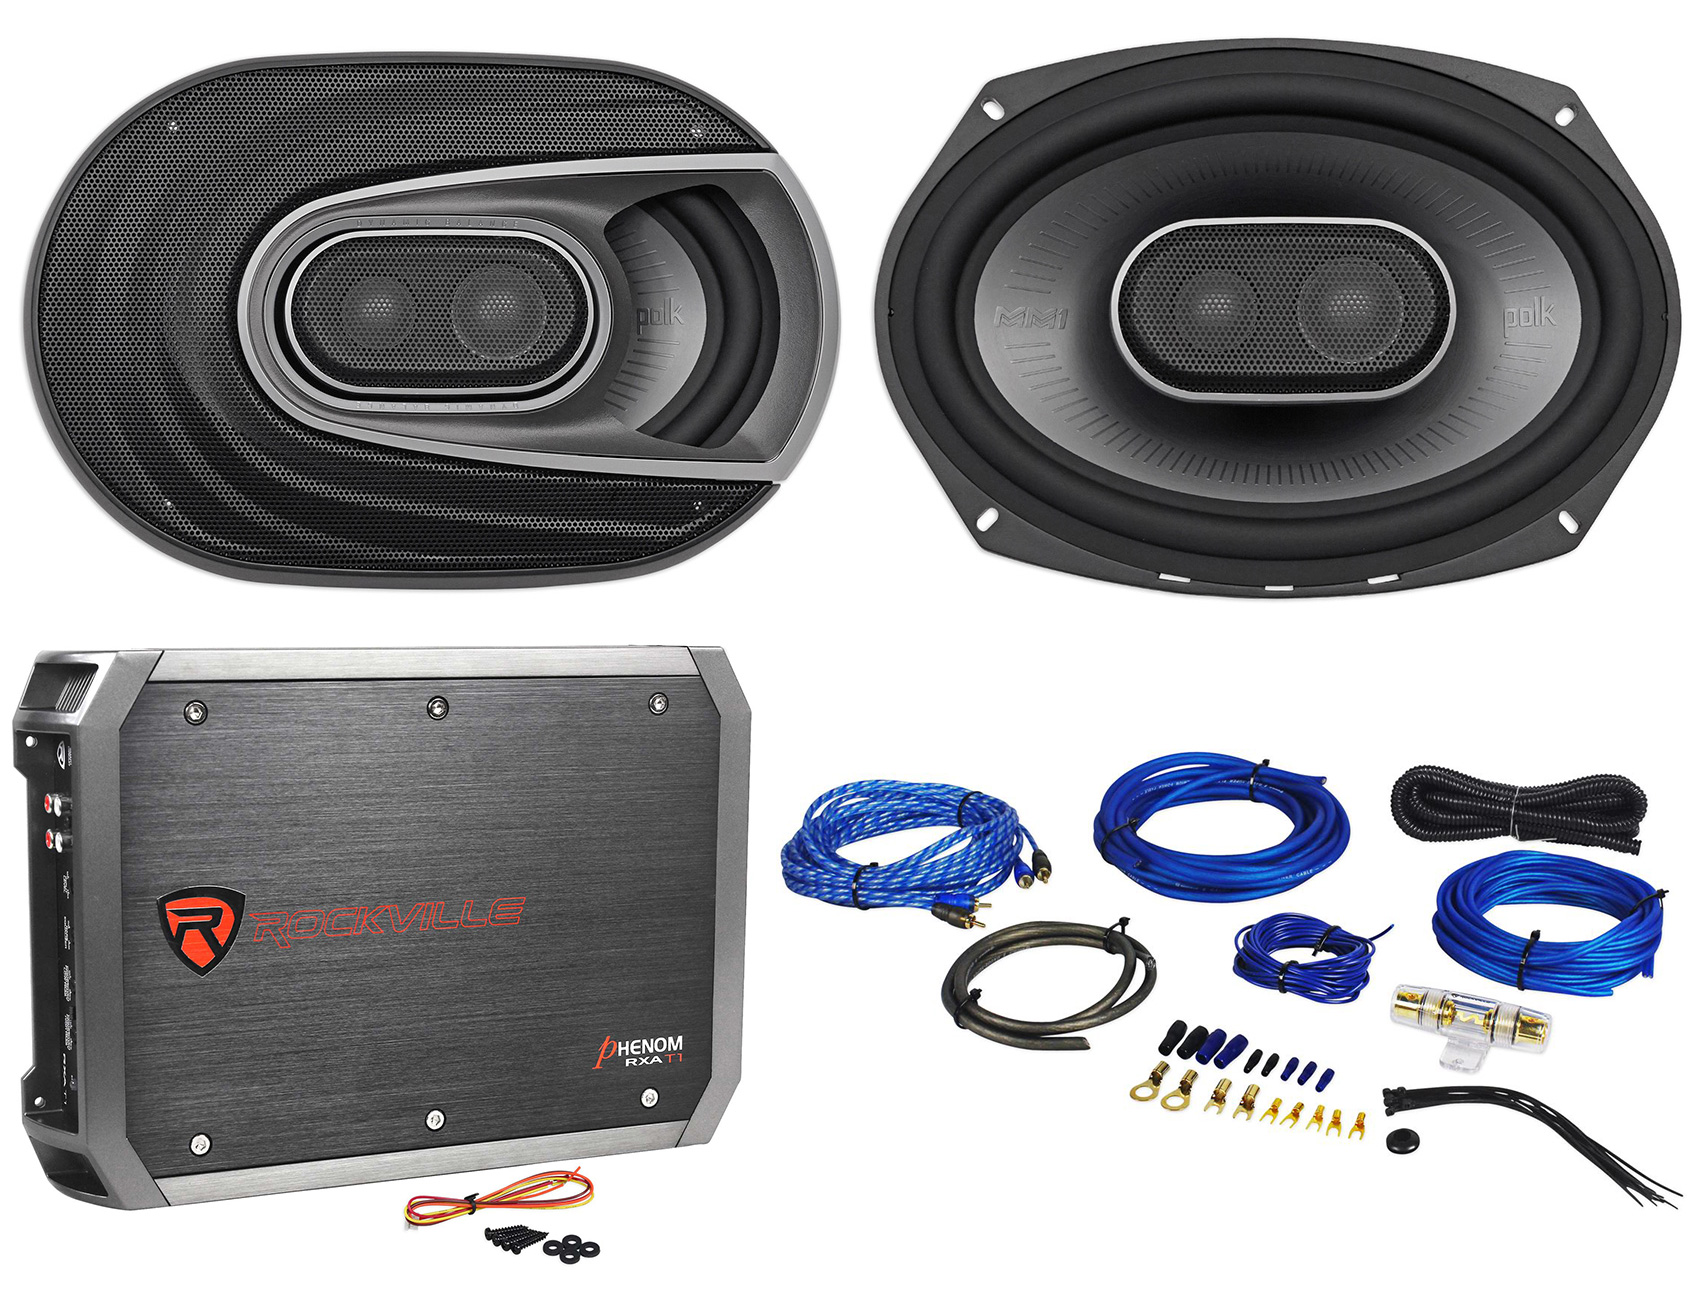 small resolution of polk audio car subwoofer wiring kits wiring diagrams home audio subwoofer wiring 2 polk audio